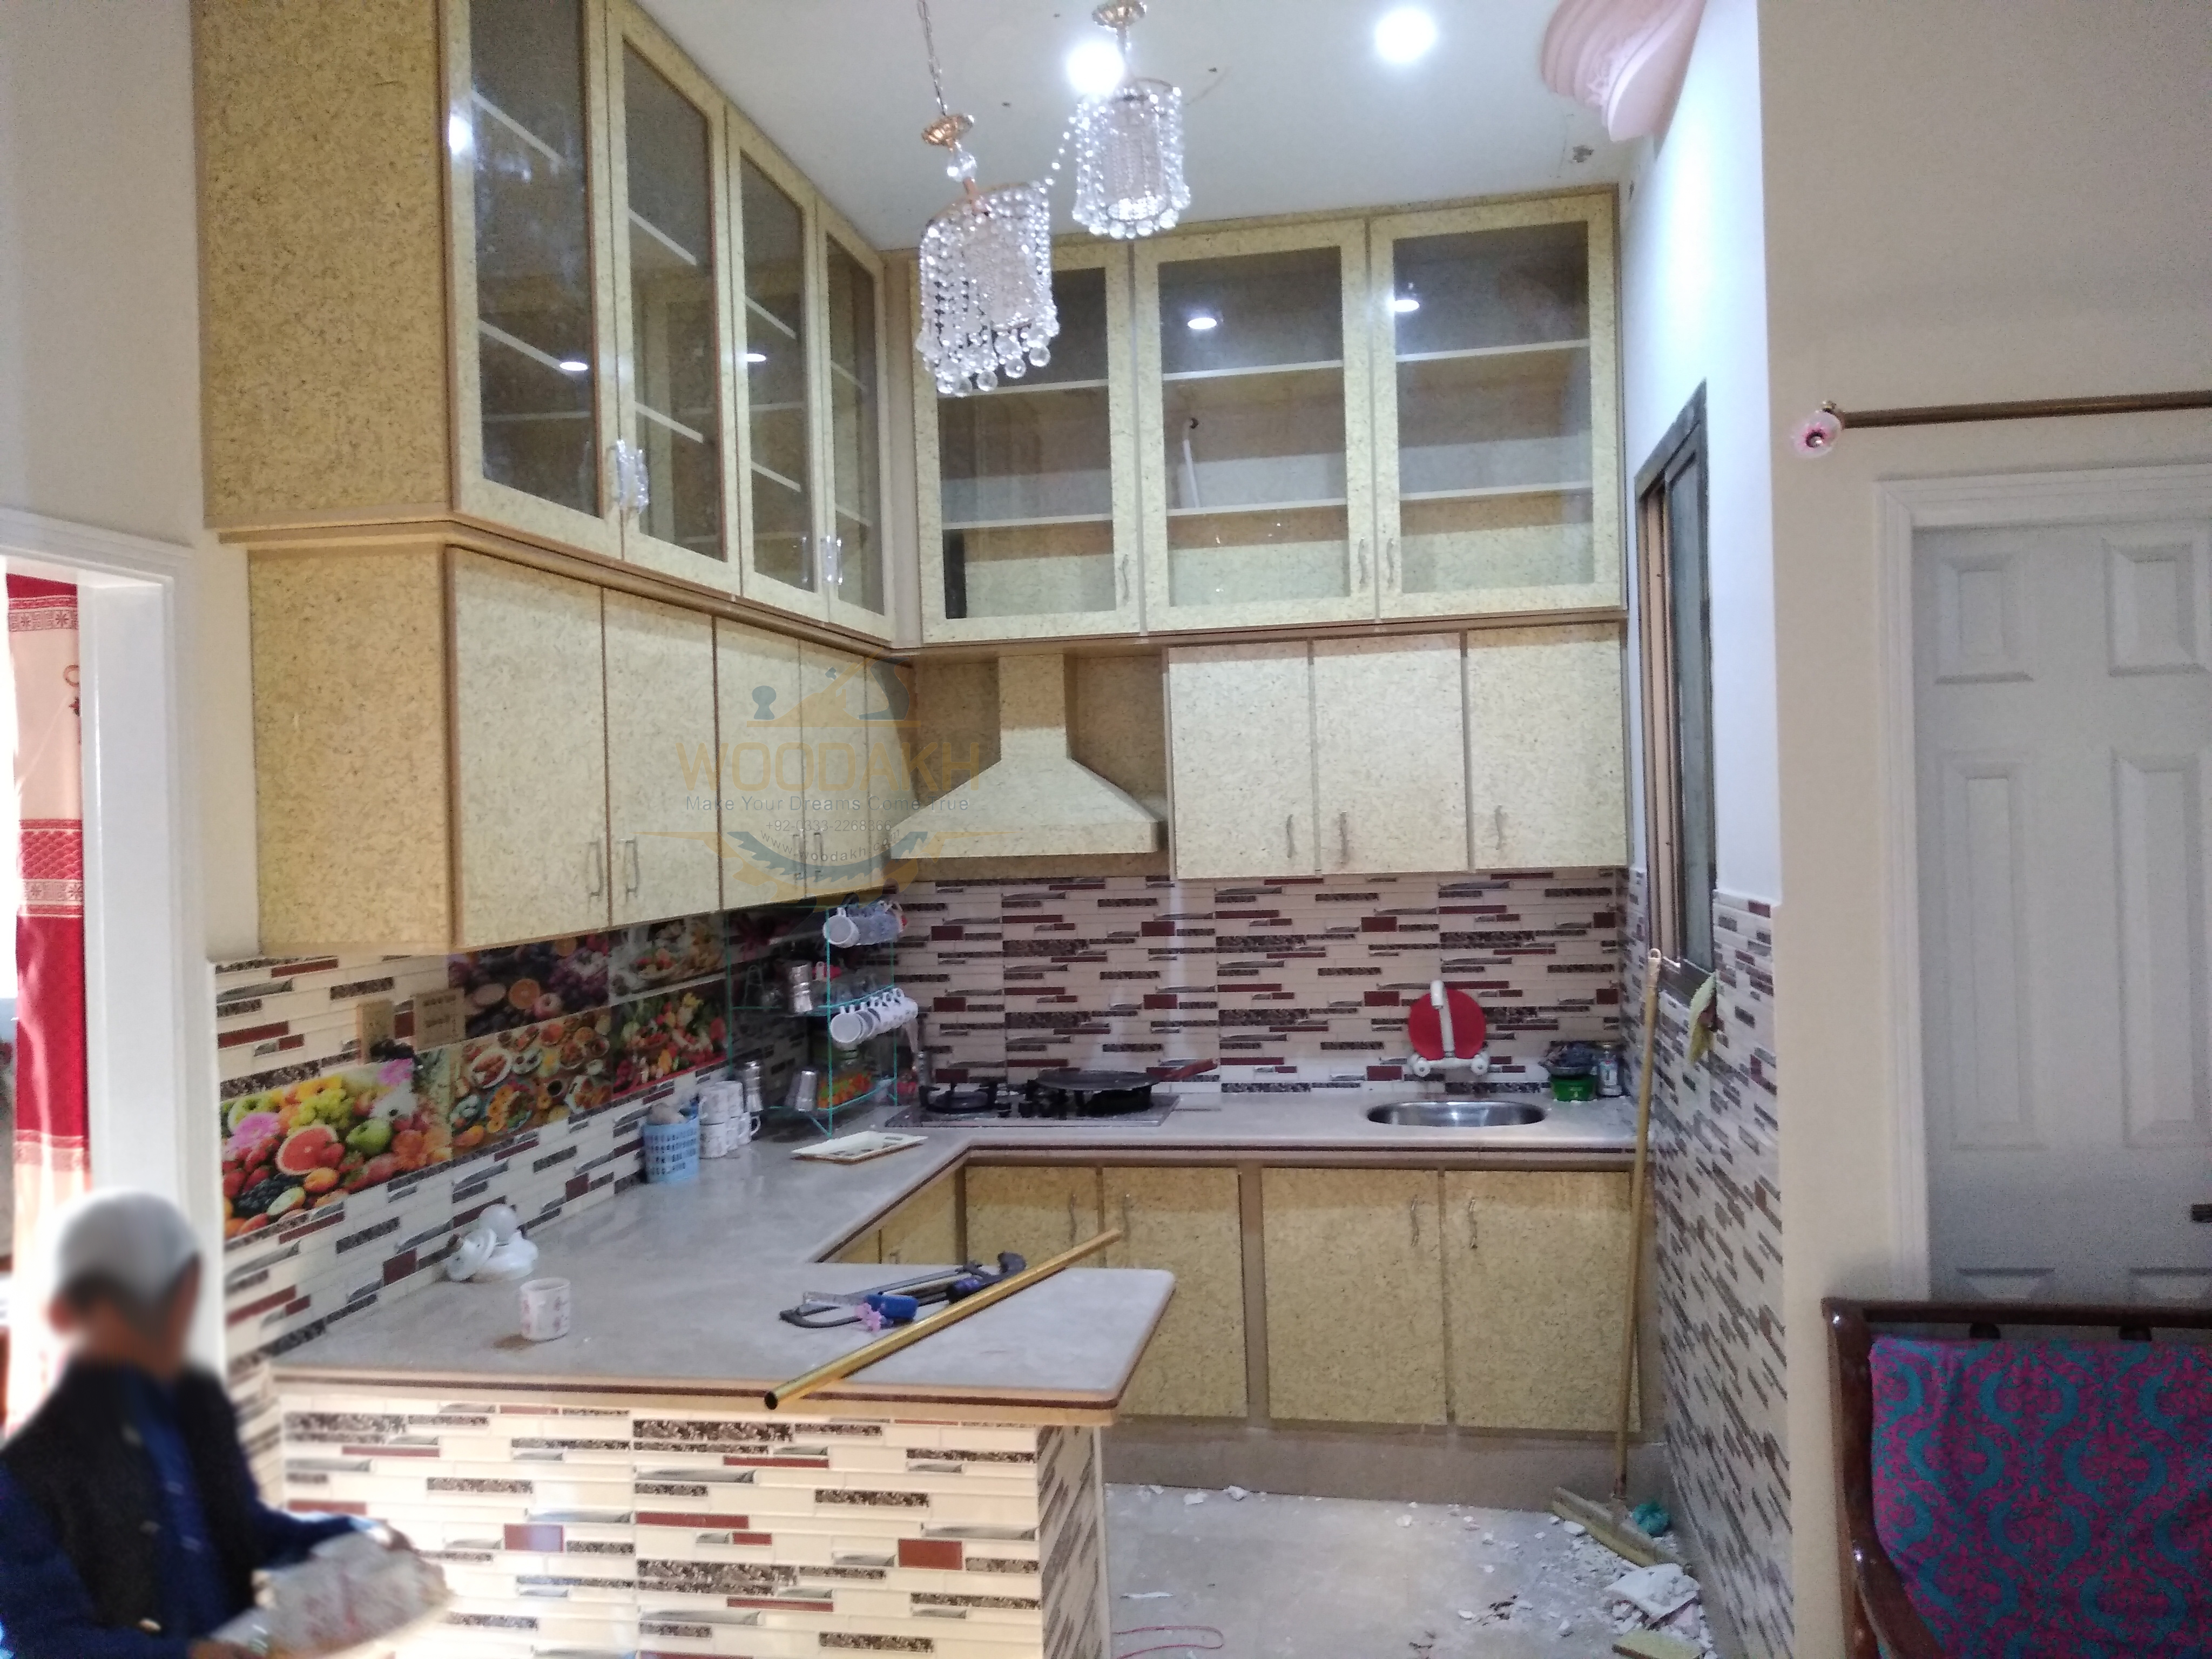 No space left in this beautiful kitchen